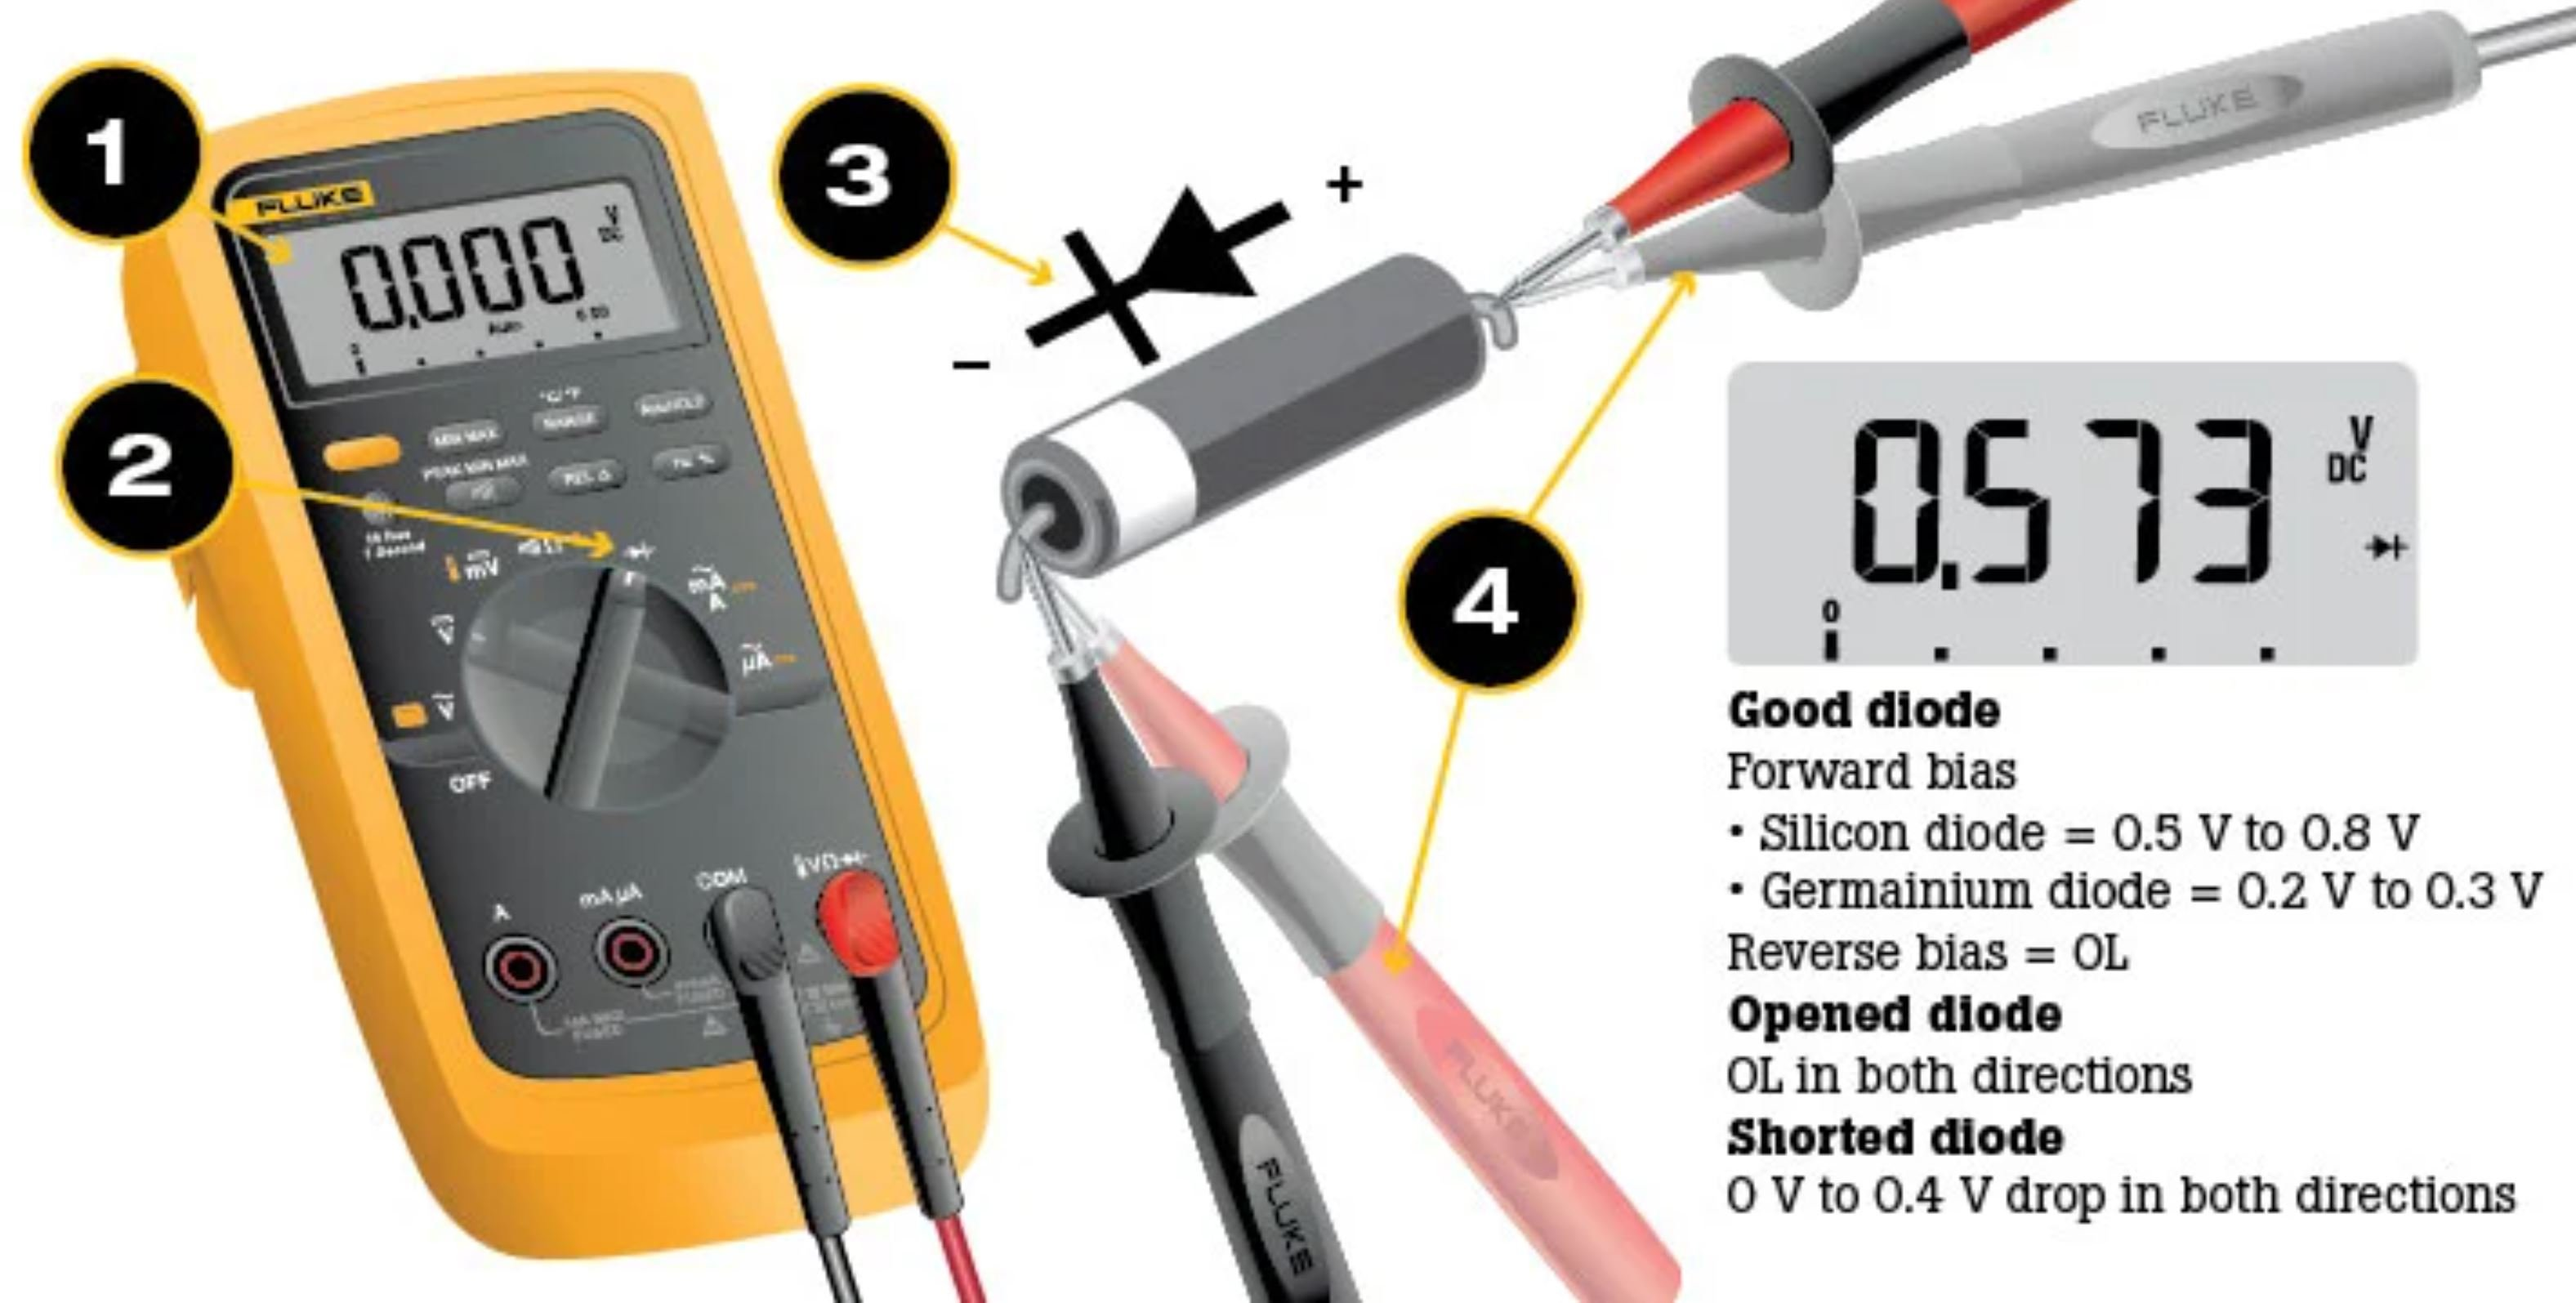 Steps for using a multimeter in the diode test mode